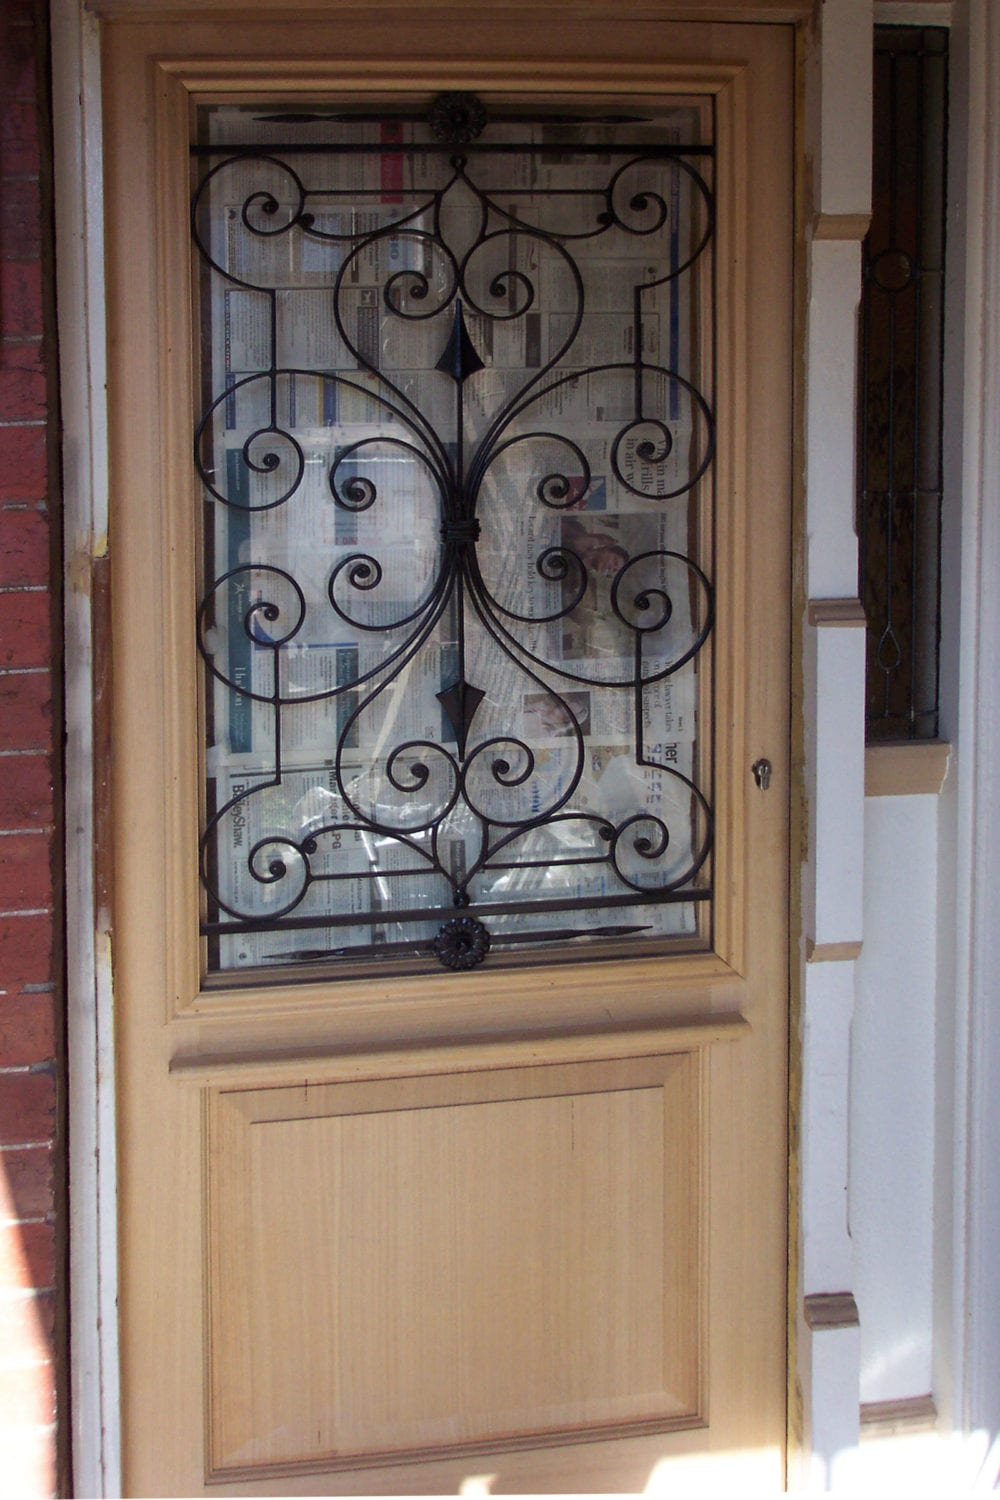 2400 #8C6640 And Timber Doors Design And Manufacture Doors To Suit Any Design  image Wrought Iron And Wood Doors 40031600